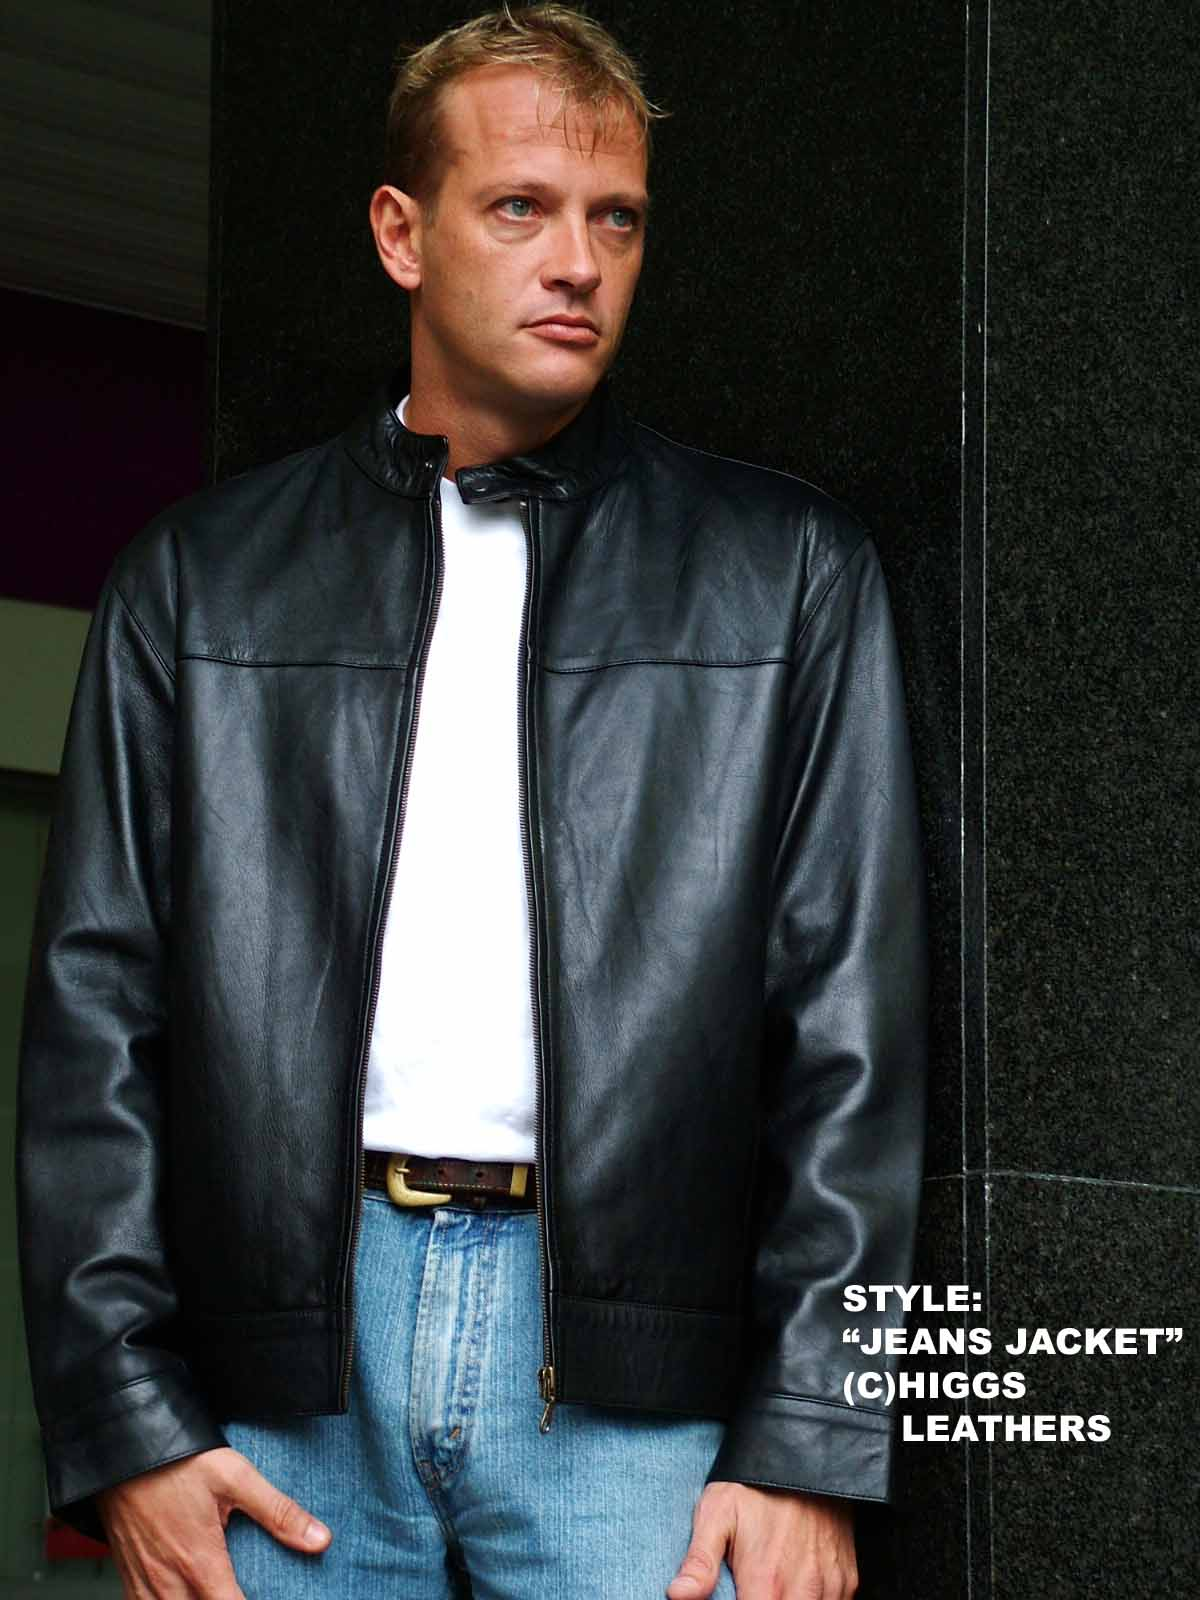 Higgs Leathers {NEW STOCK!}  Judd  (Jeans style men's black leather jackets)